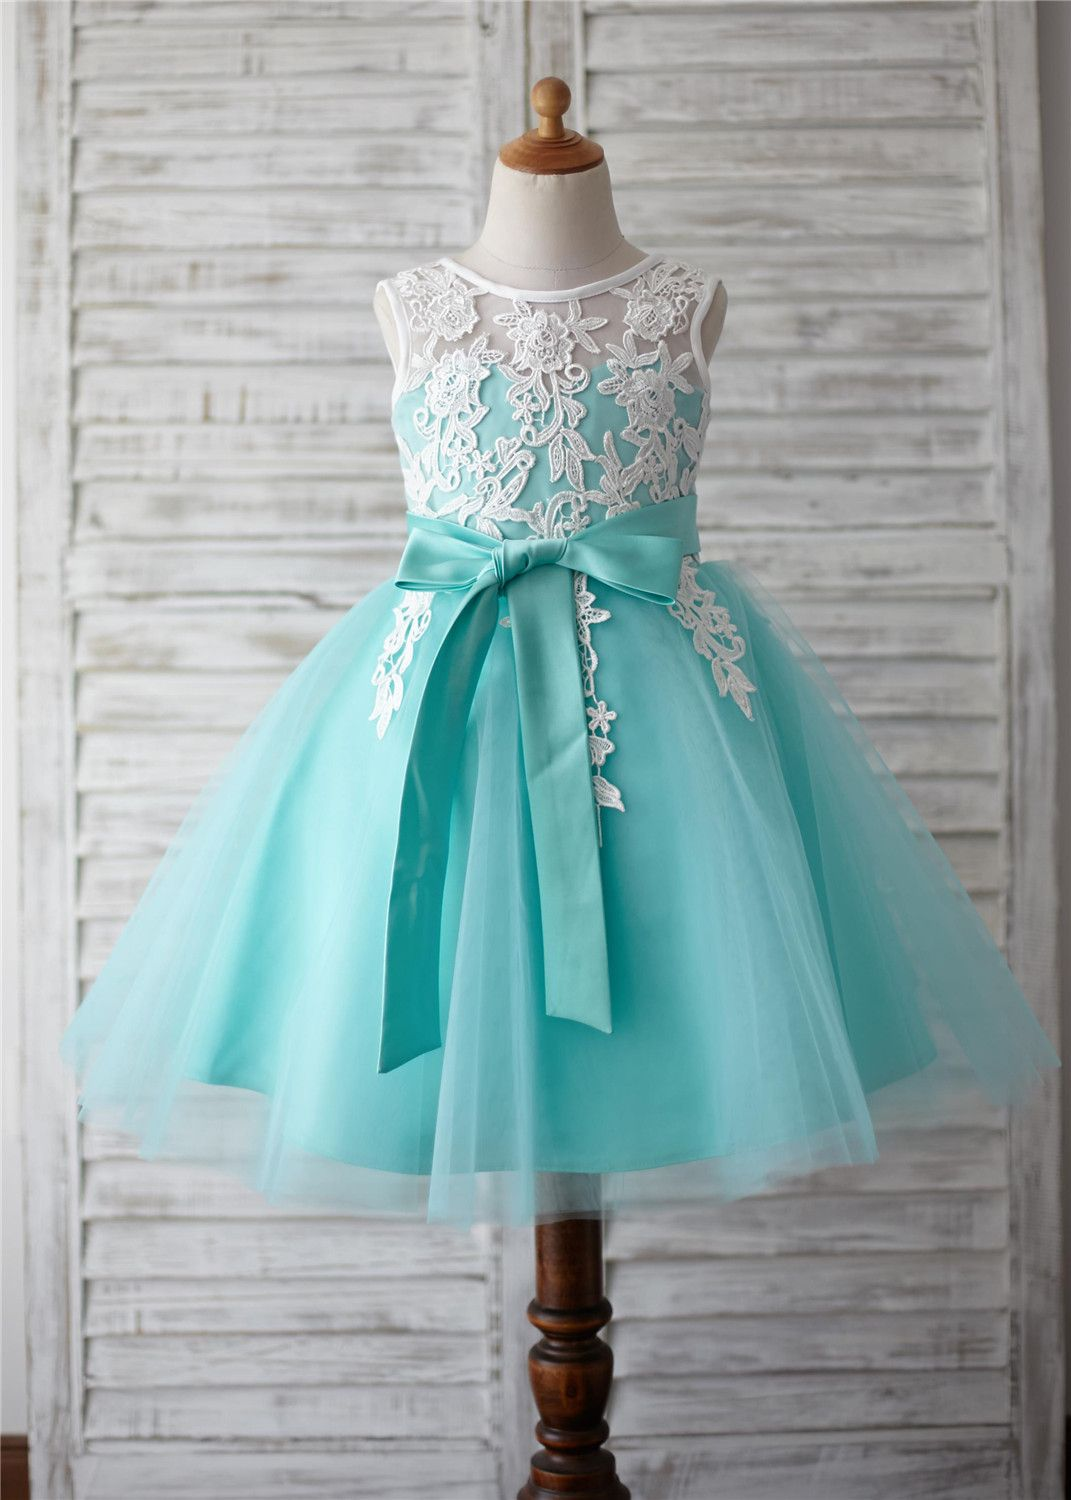 Turquoise Tulle Ivory Lace Knee Length Flower Girl